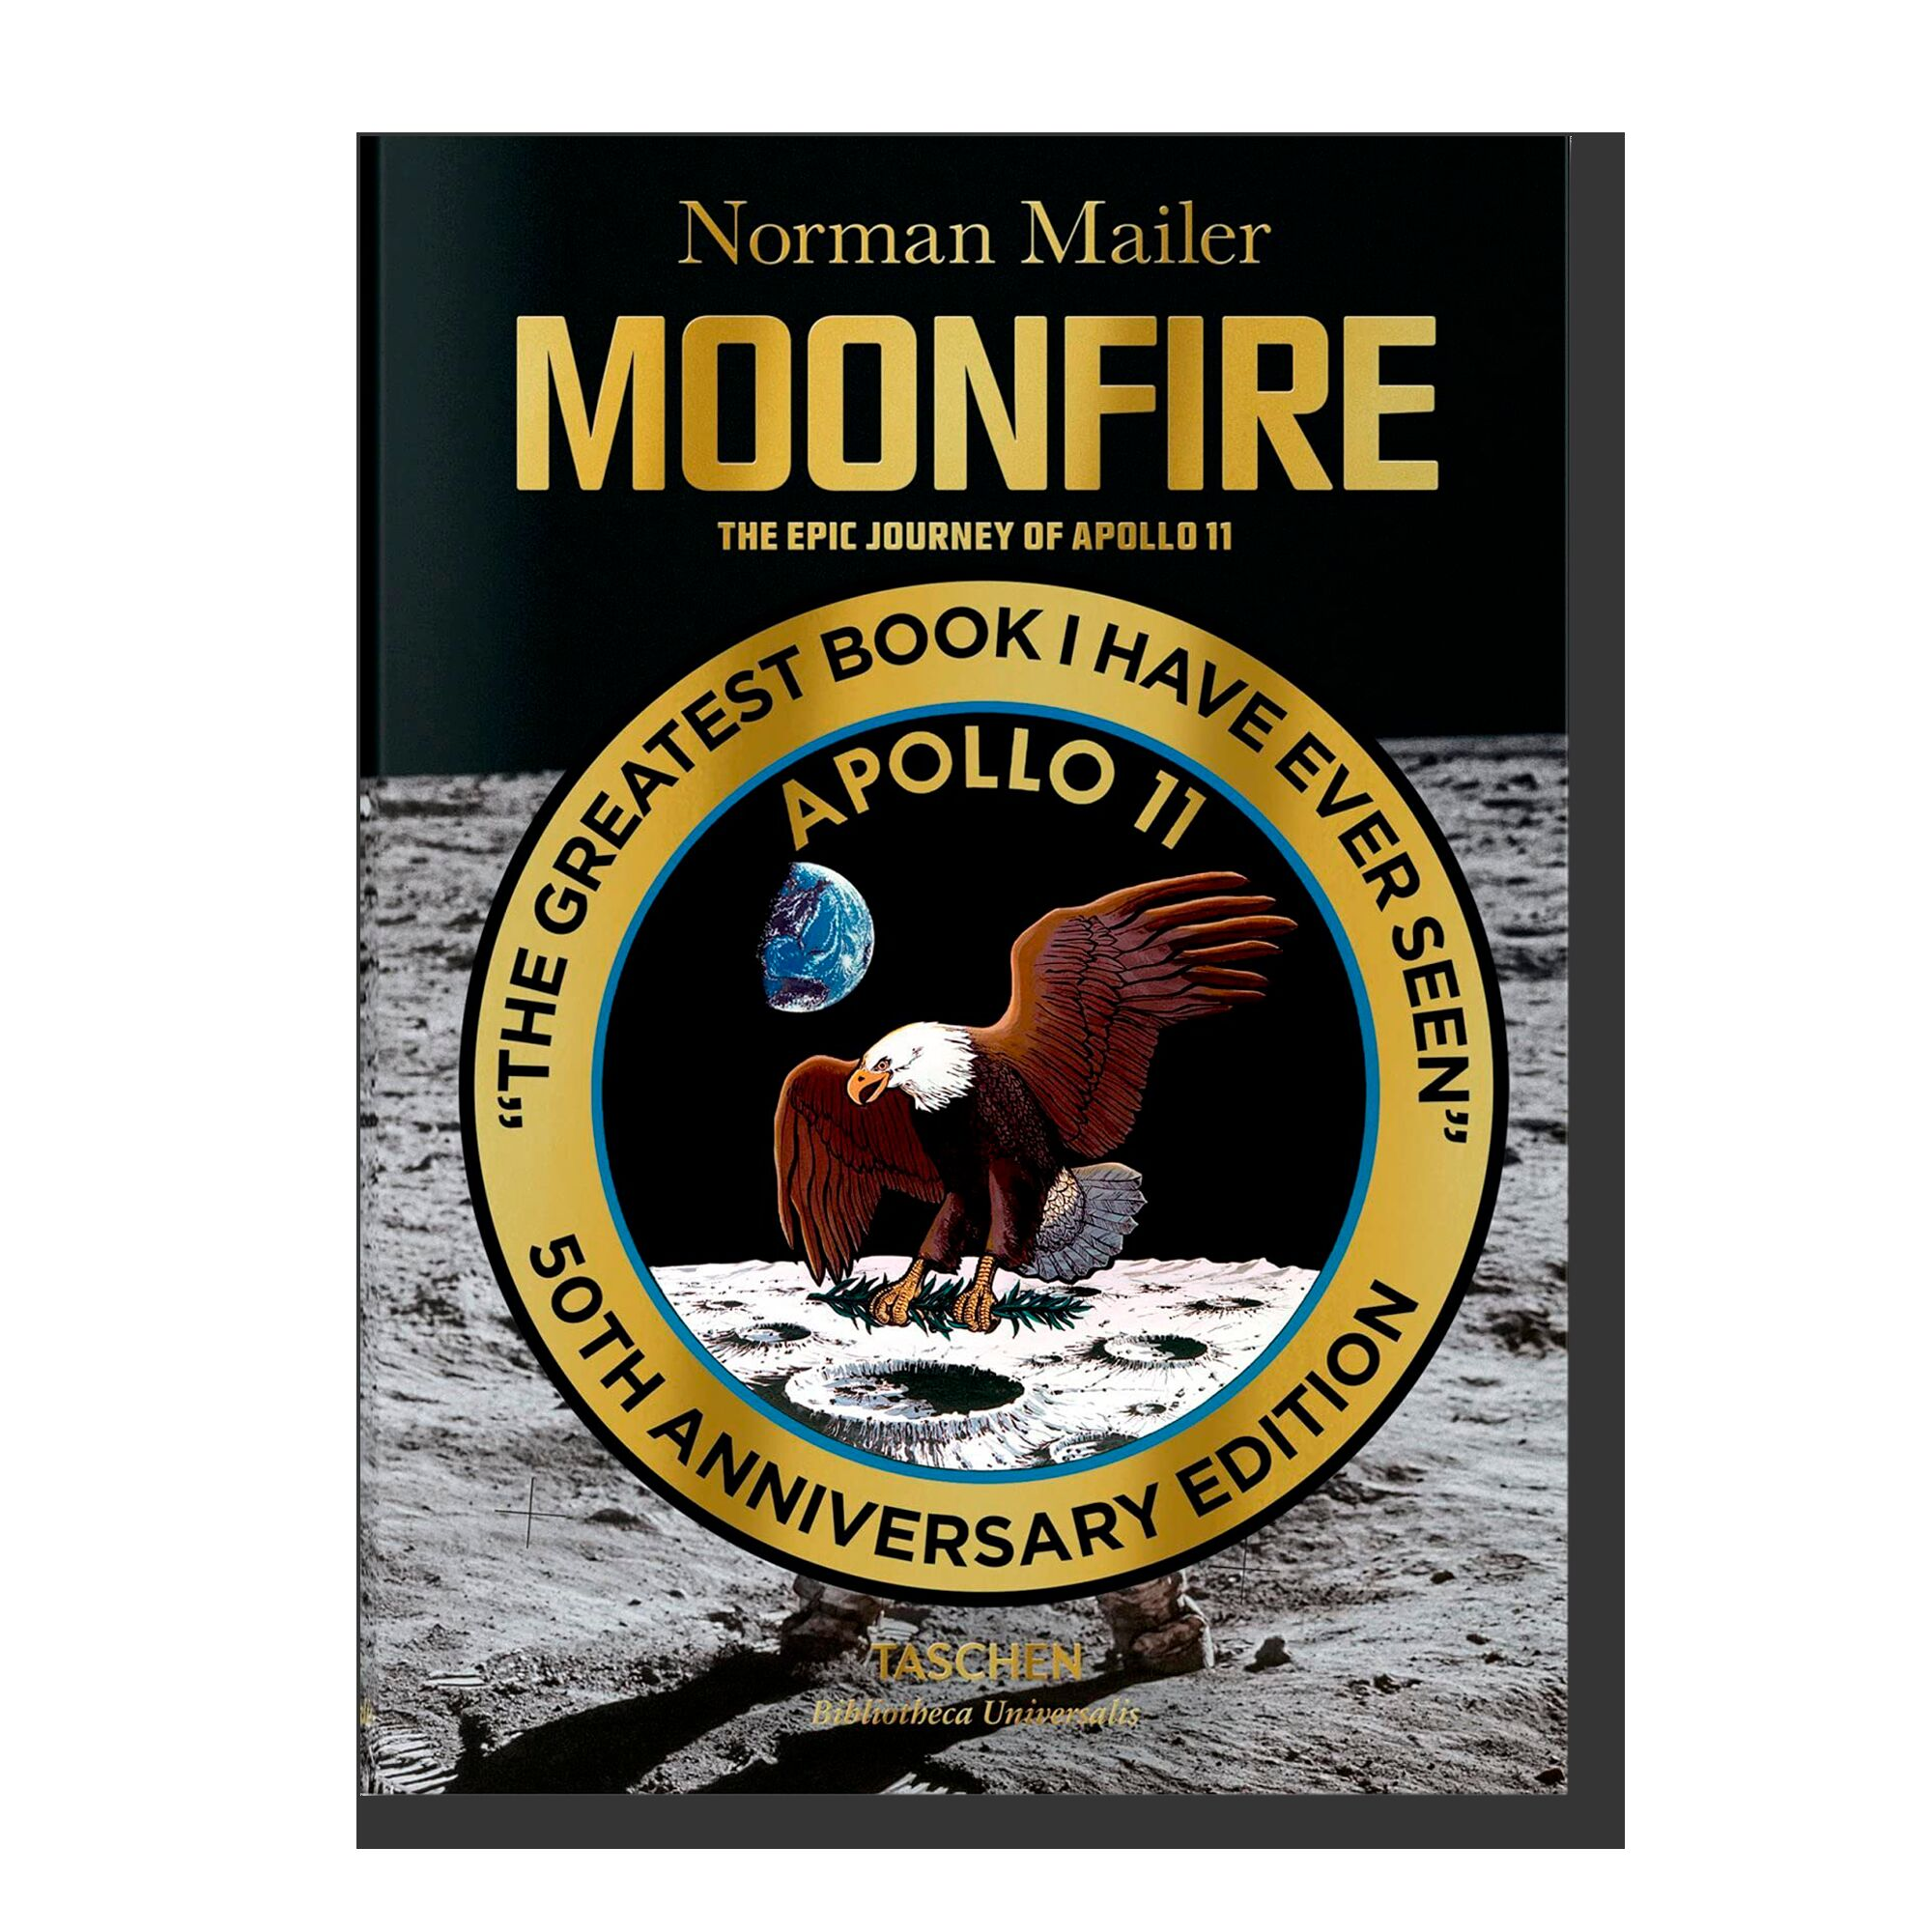 MoonFire by Norman Mailer. The Epic Journey of Apollo 11